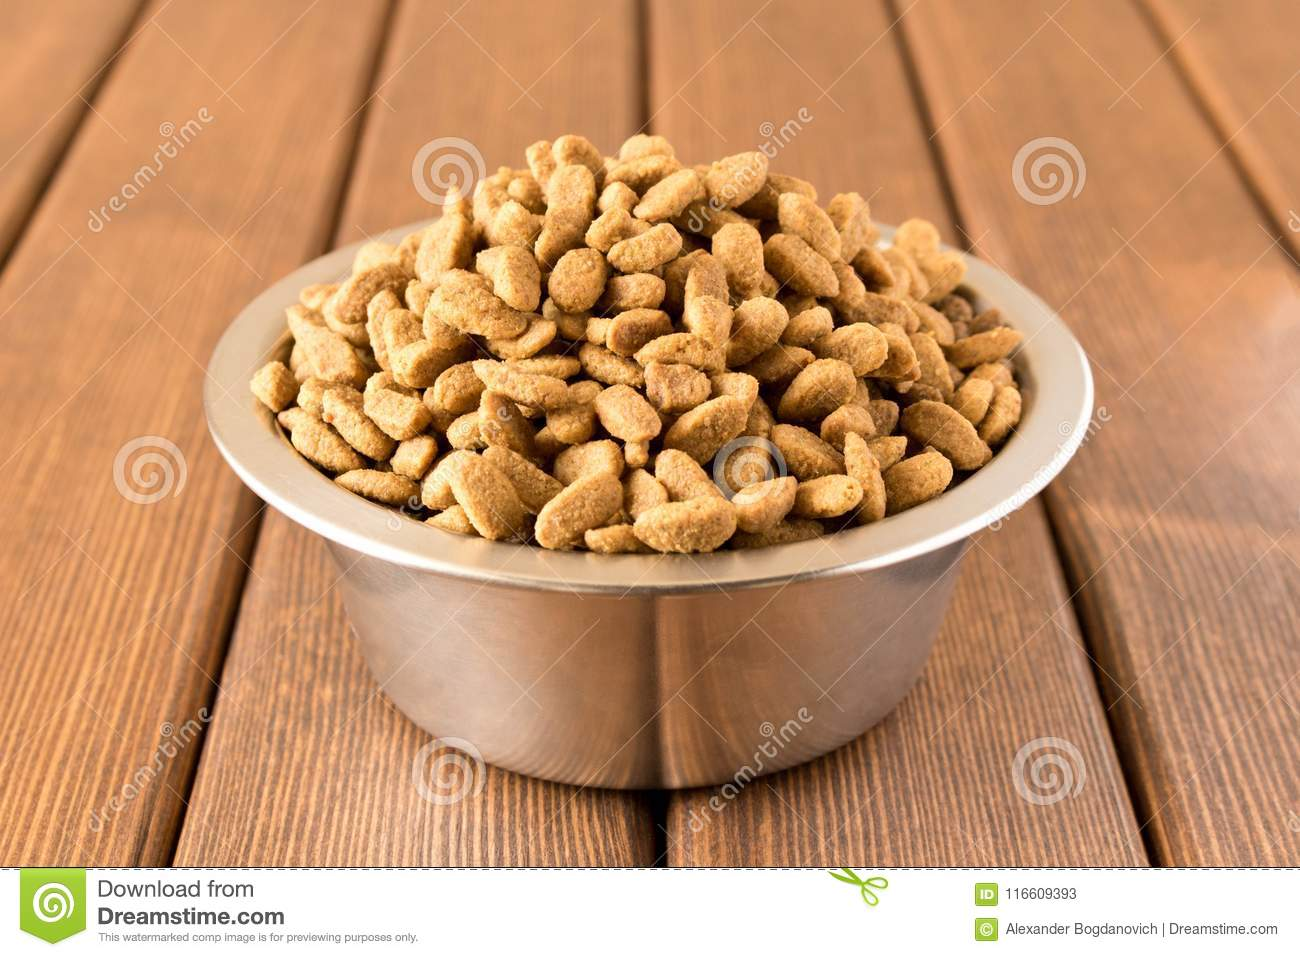 A bowl of dog food on a wooden table